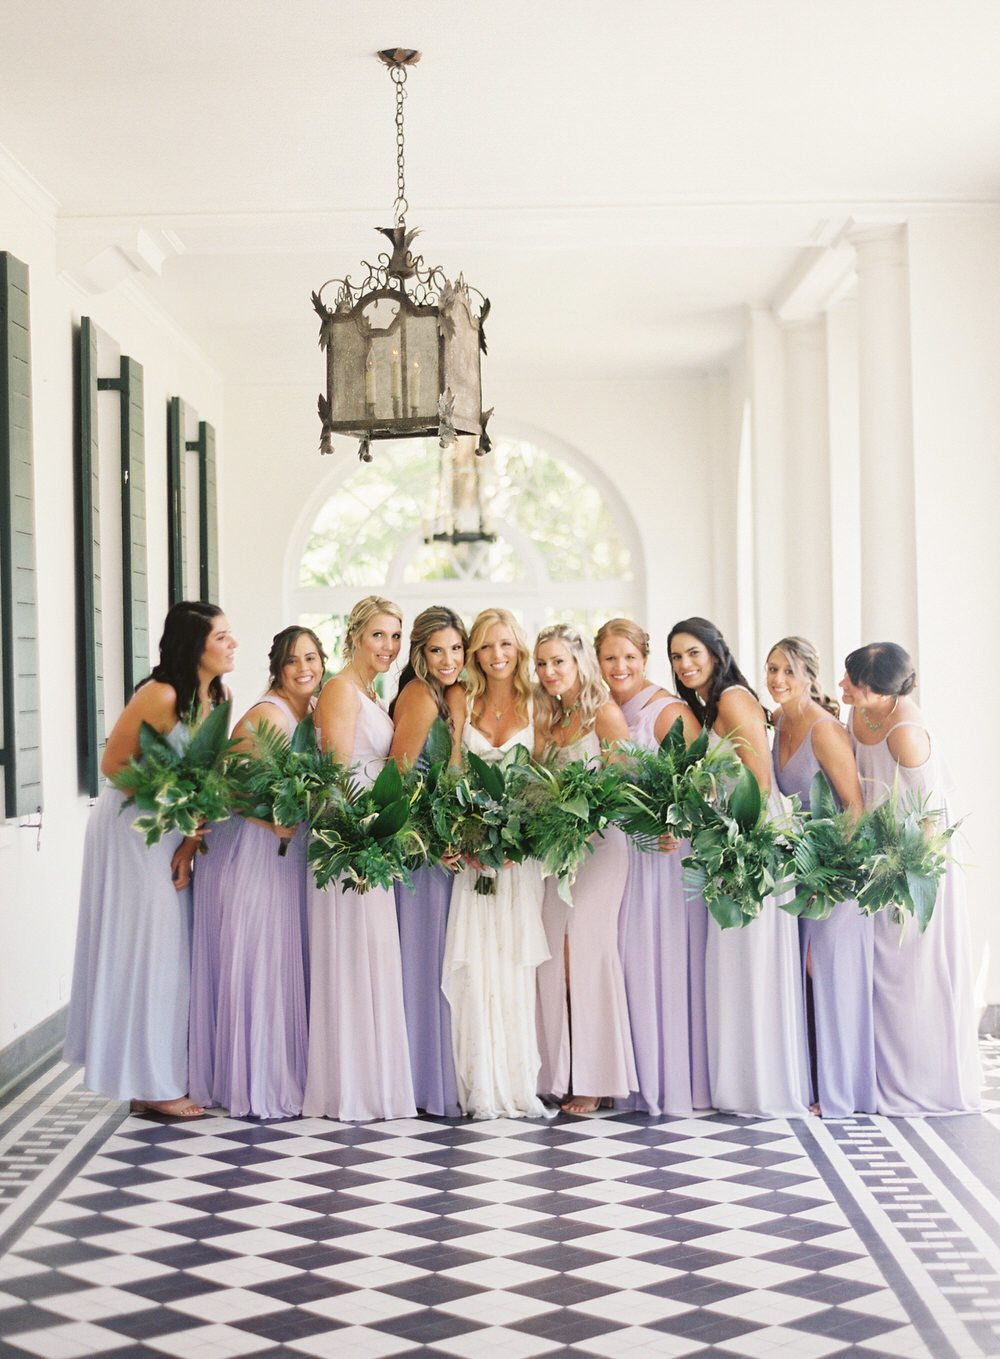 bride with her bridesmaids in an array of lavender dresses